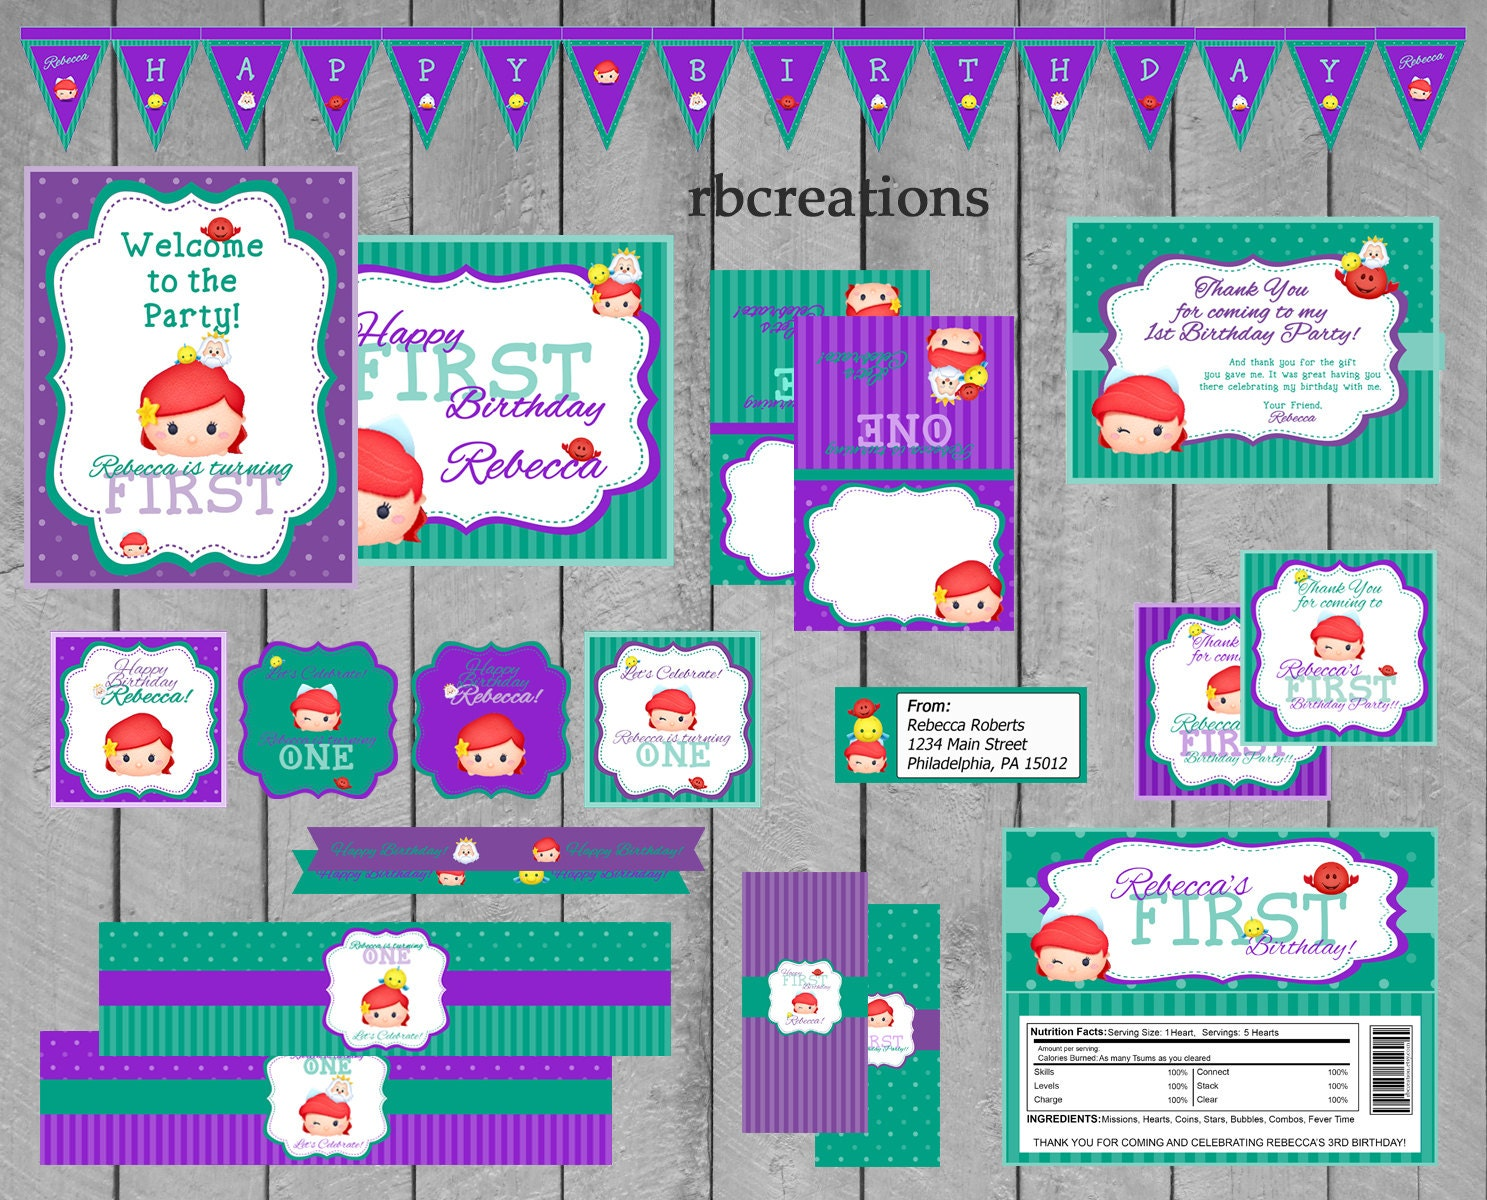 Tsum Tsum Fiesta De Cumpleaños Para Colorear Páginas Libro De: Little Mermaid Tsum Tsum Party Package Tsum Tsum Party Tsum